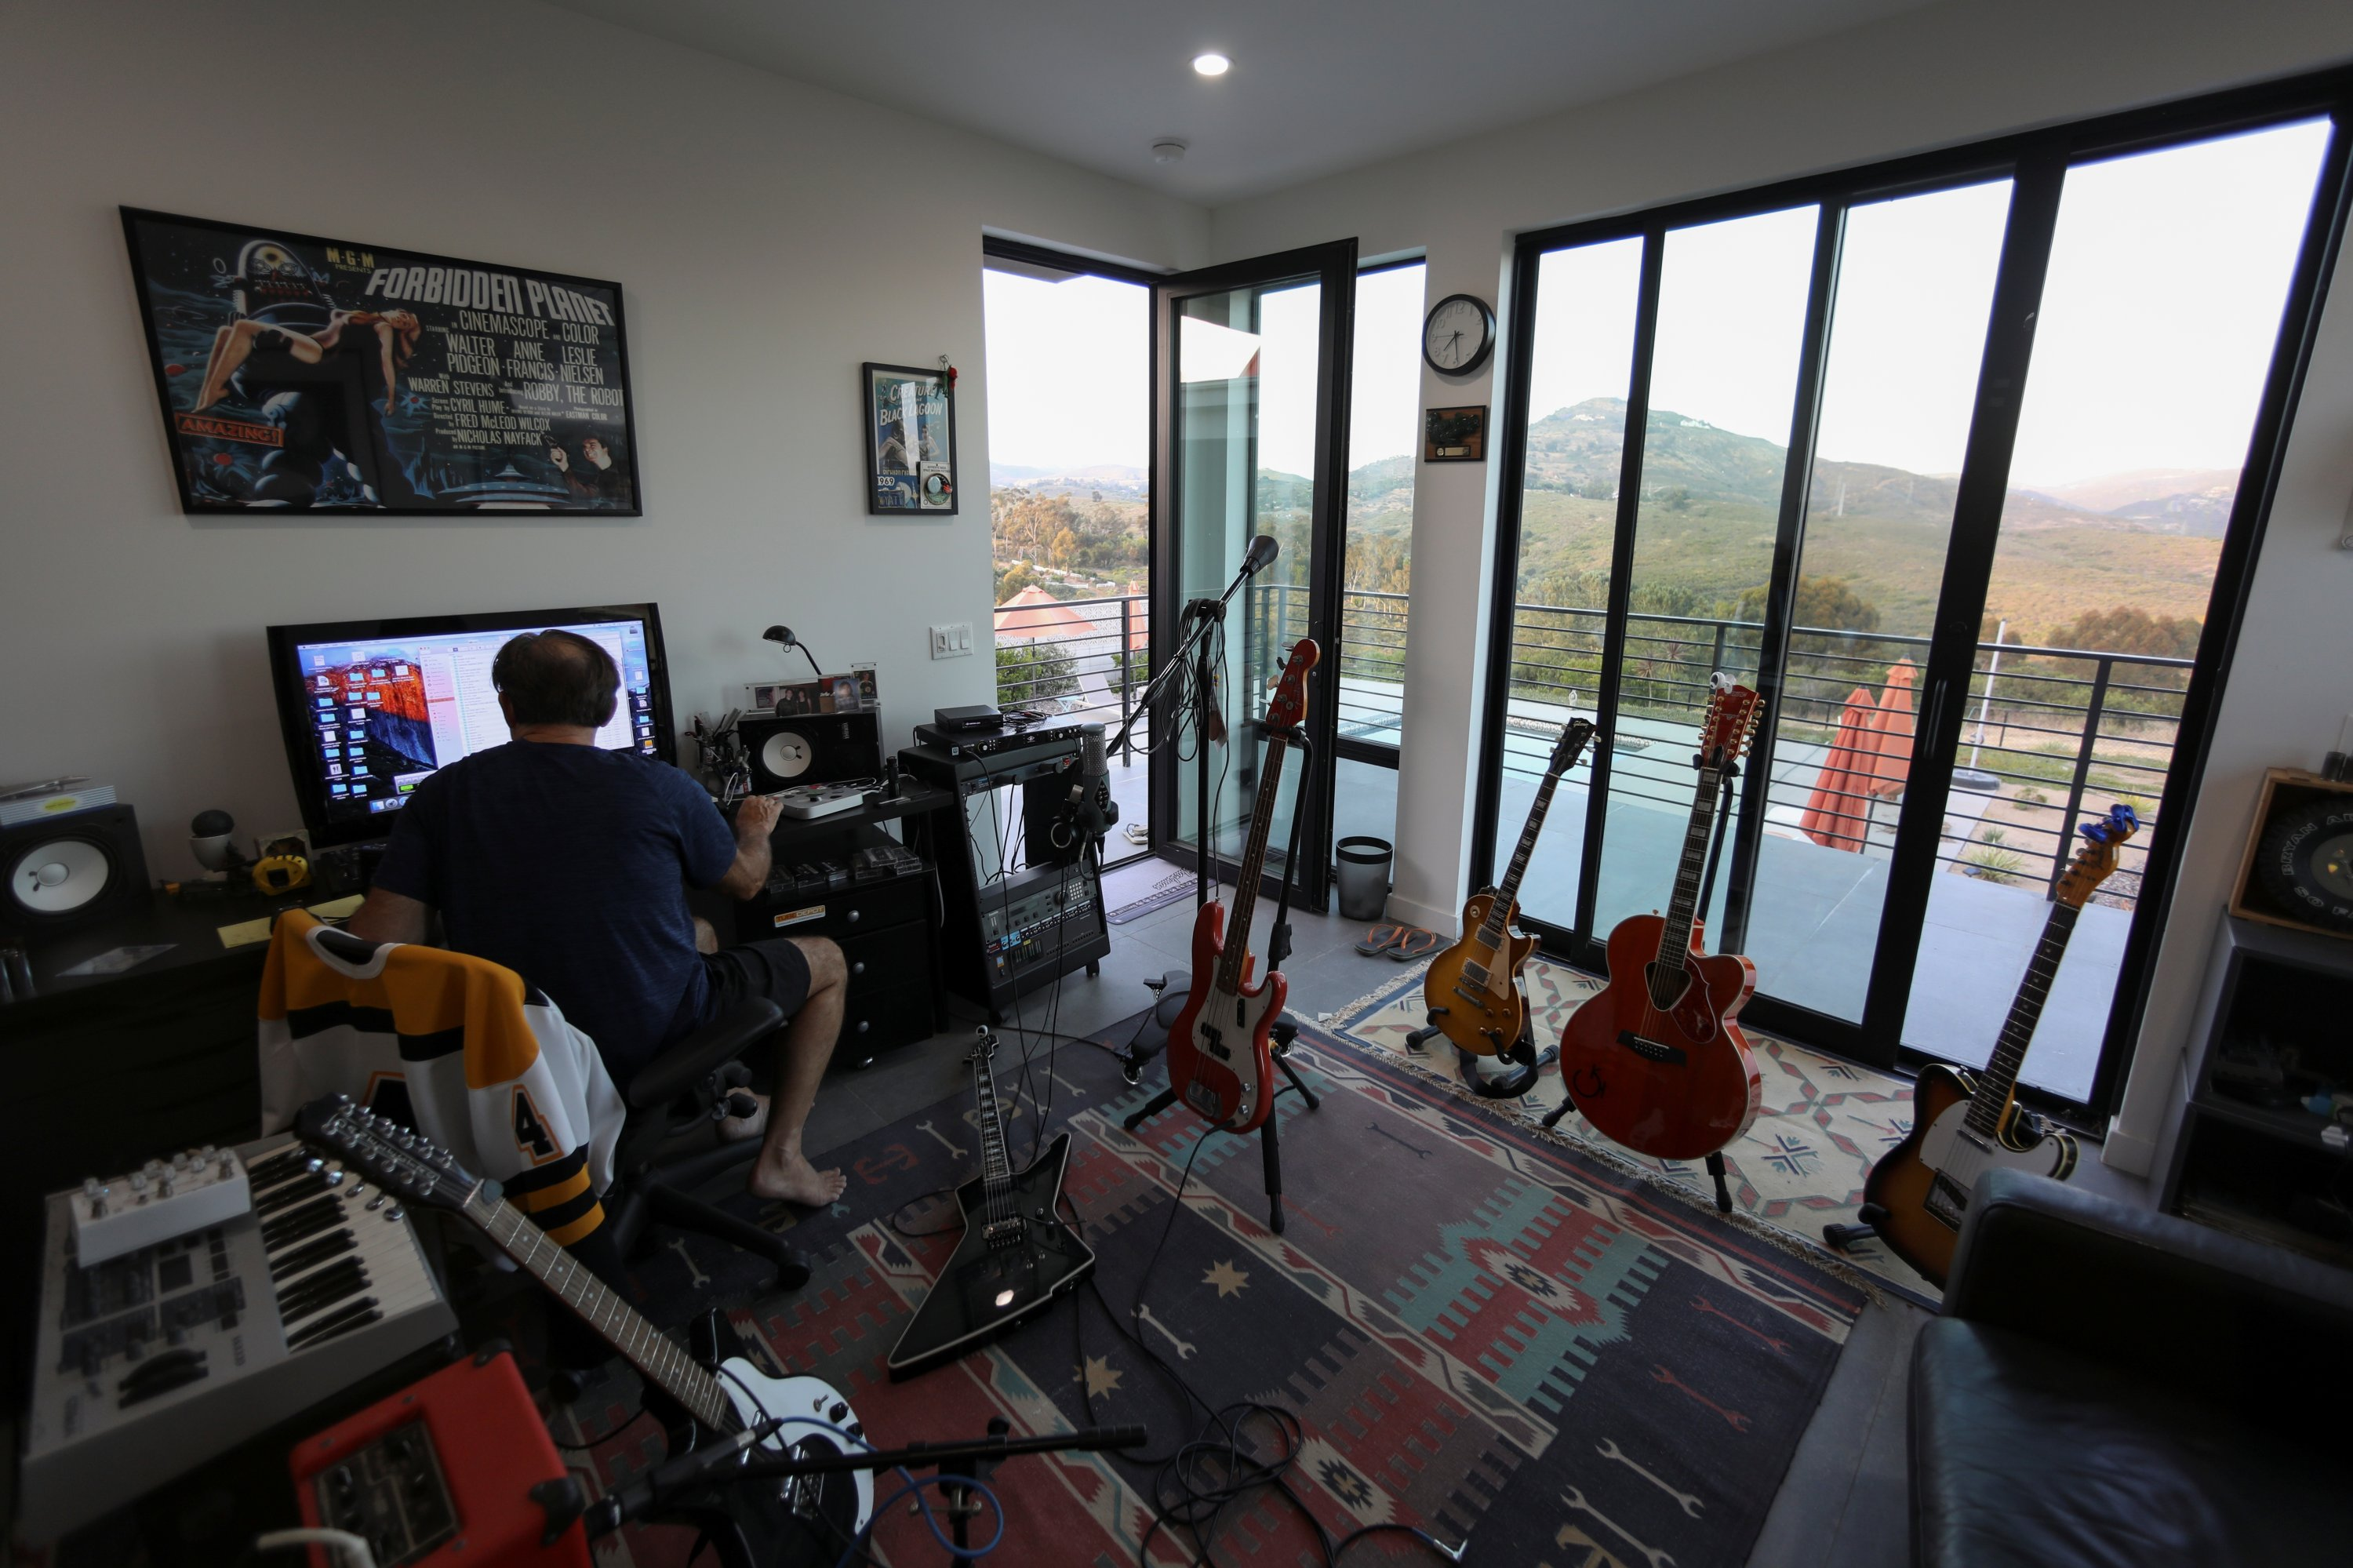 Guitarist Keith Scott, who would normally be out on tour with Bryan Adams, works on a song from his home studio during the outbreak of the coronavirus in Encinitas, California, U.S., June 16, 2020. (Reuters Photo)